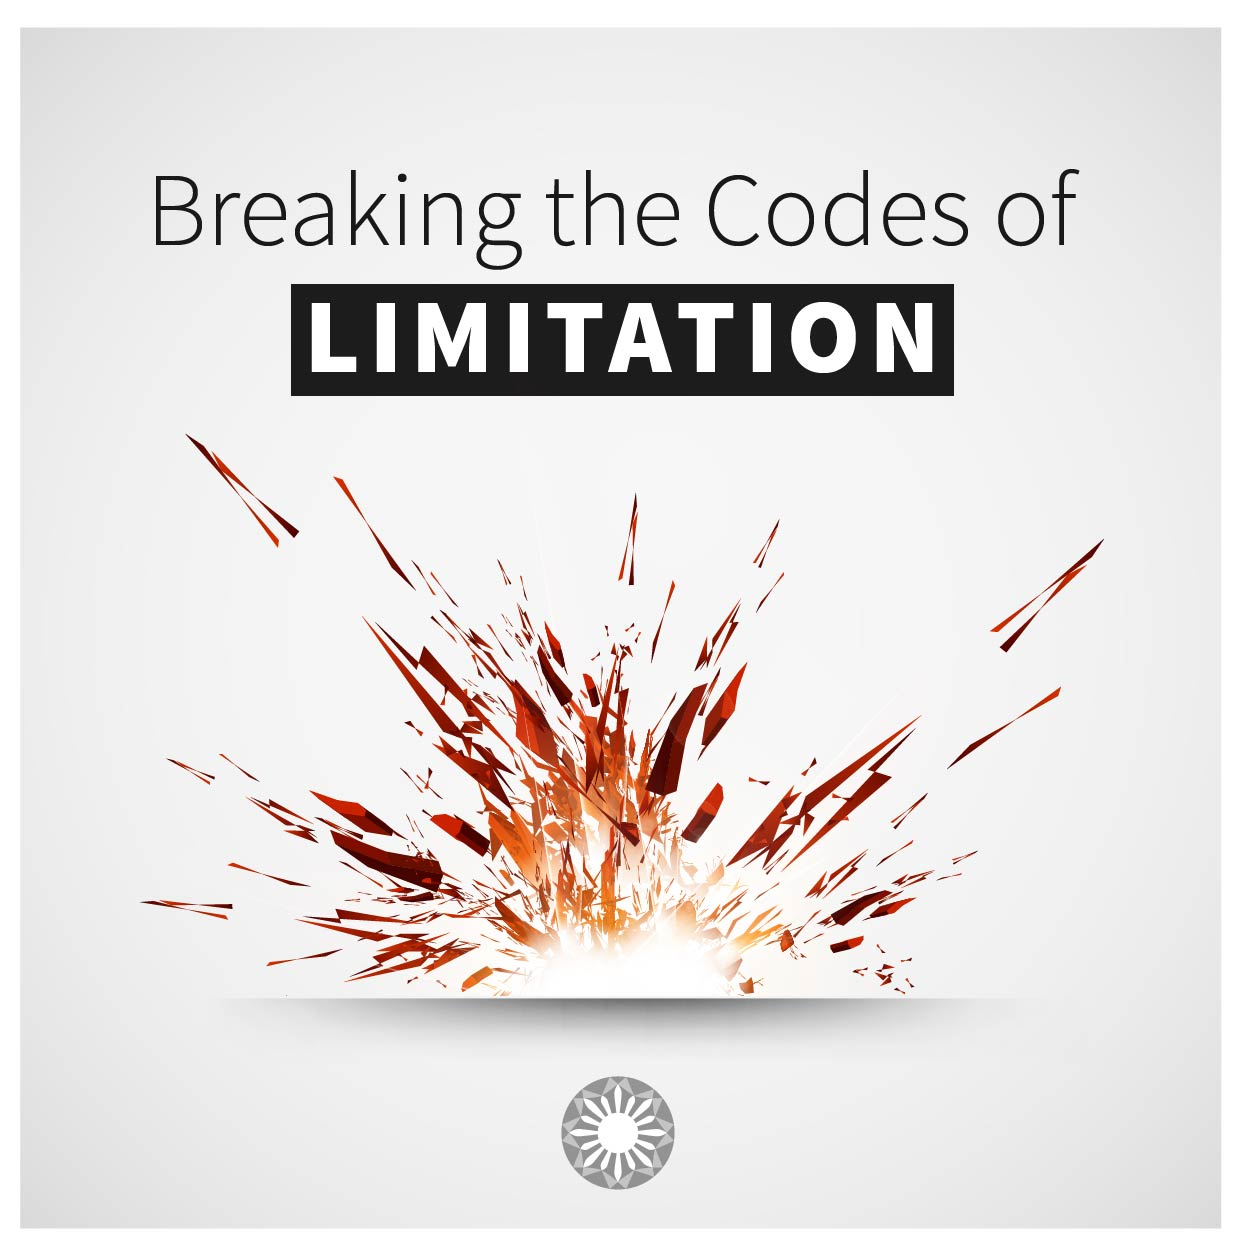 Breaking The Codes of Limitation | Expand with Julius and Xpnsion Network